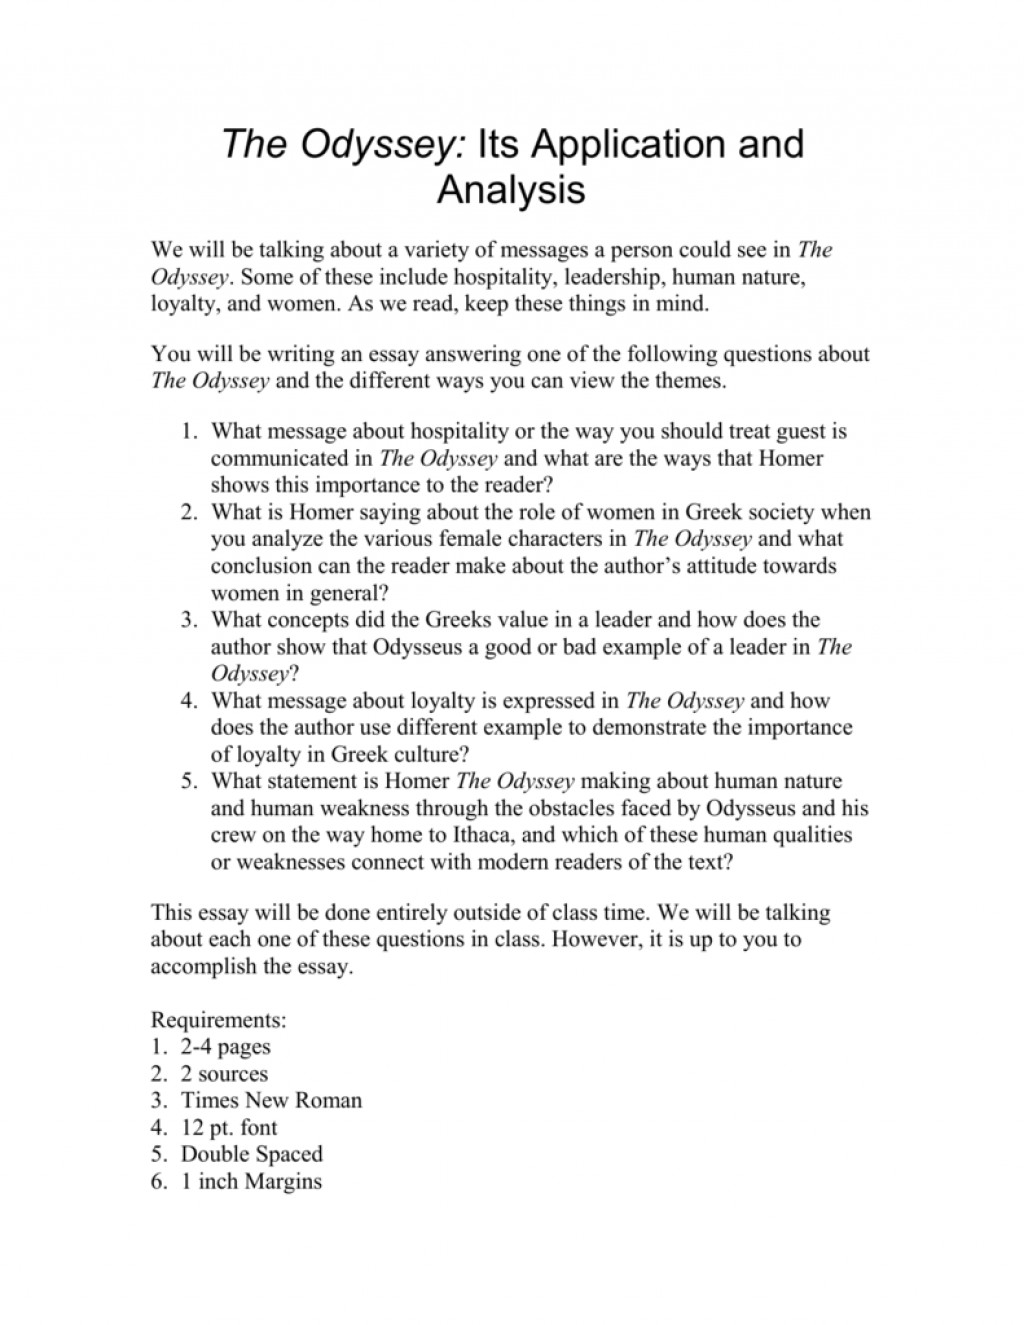 004 Essay Example 008004991 1 Awesome Odyssey Prompts Titles Large